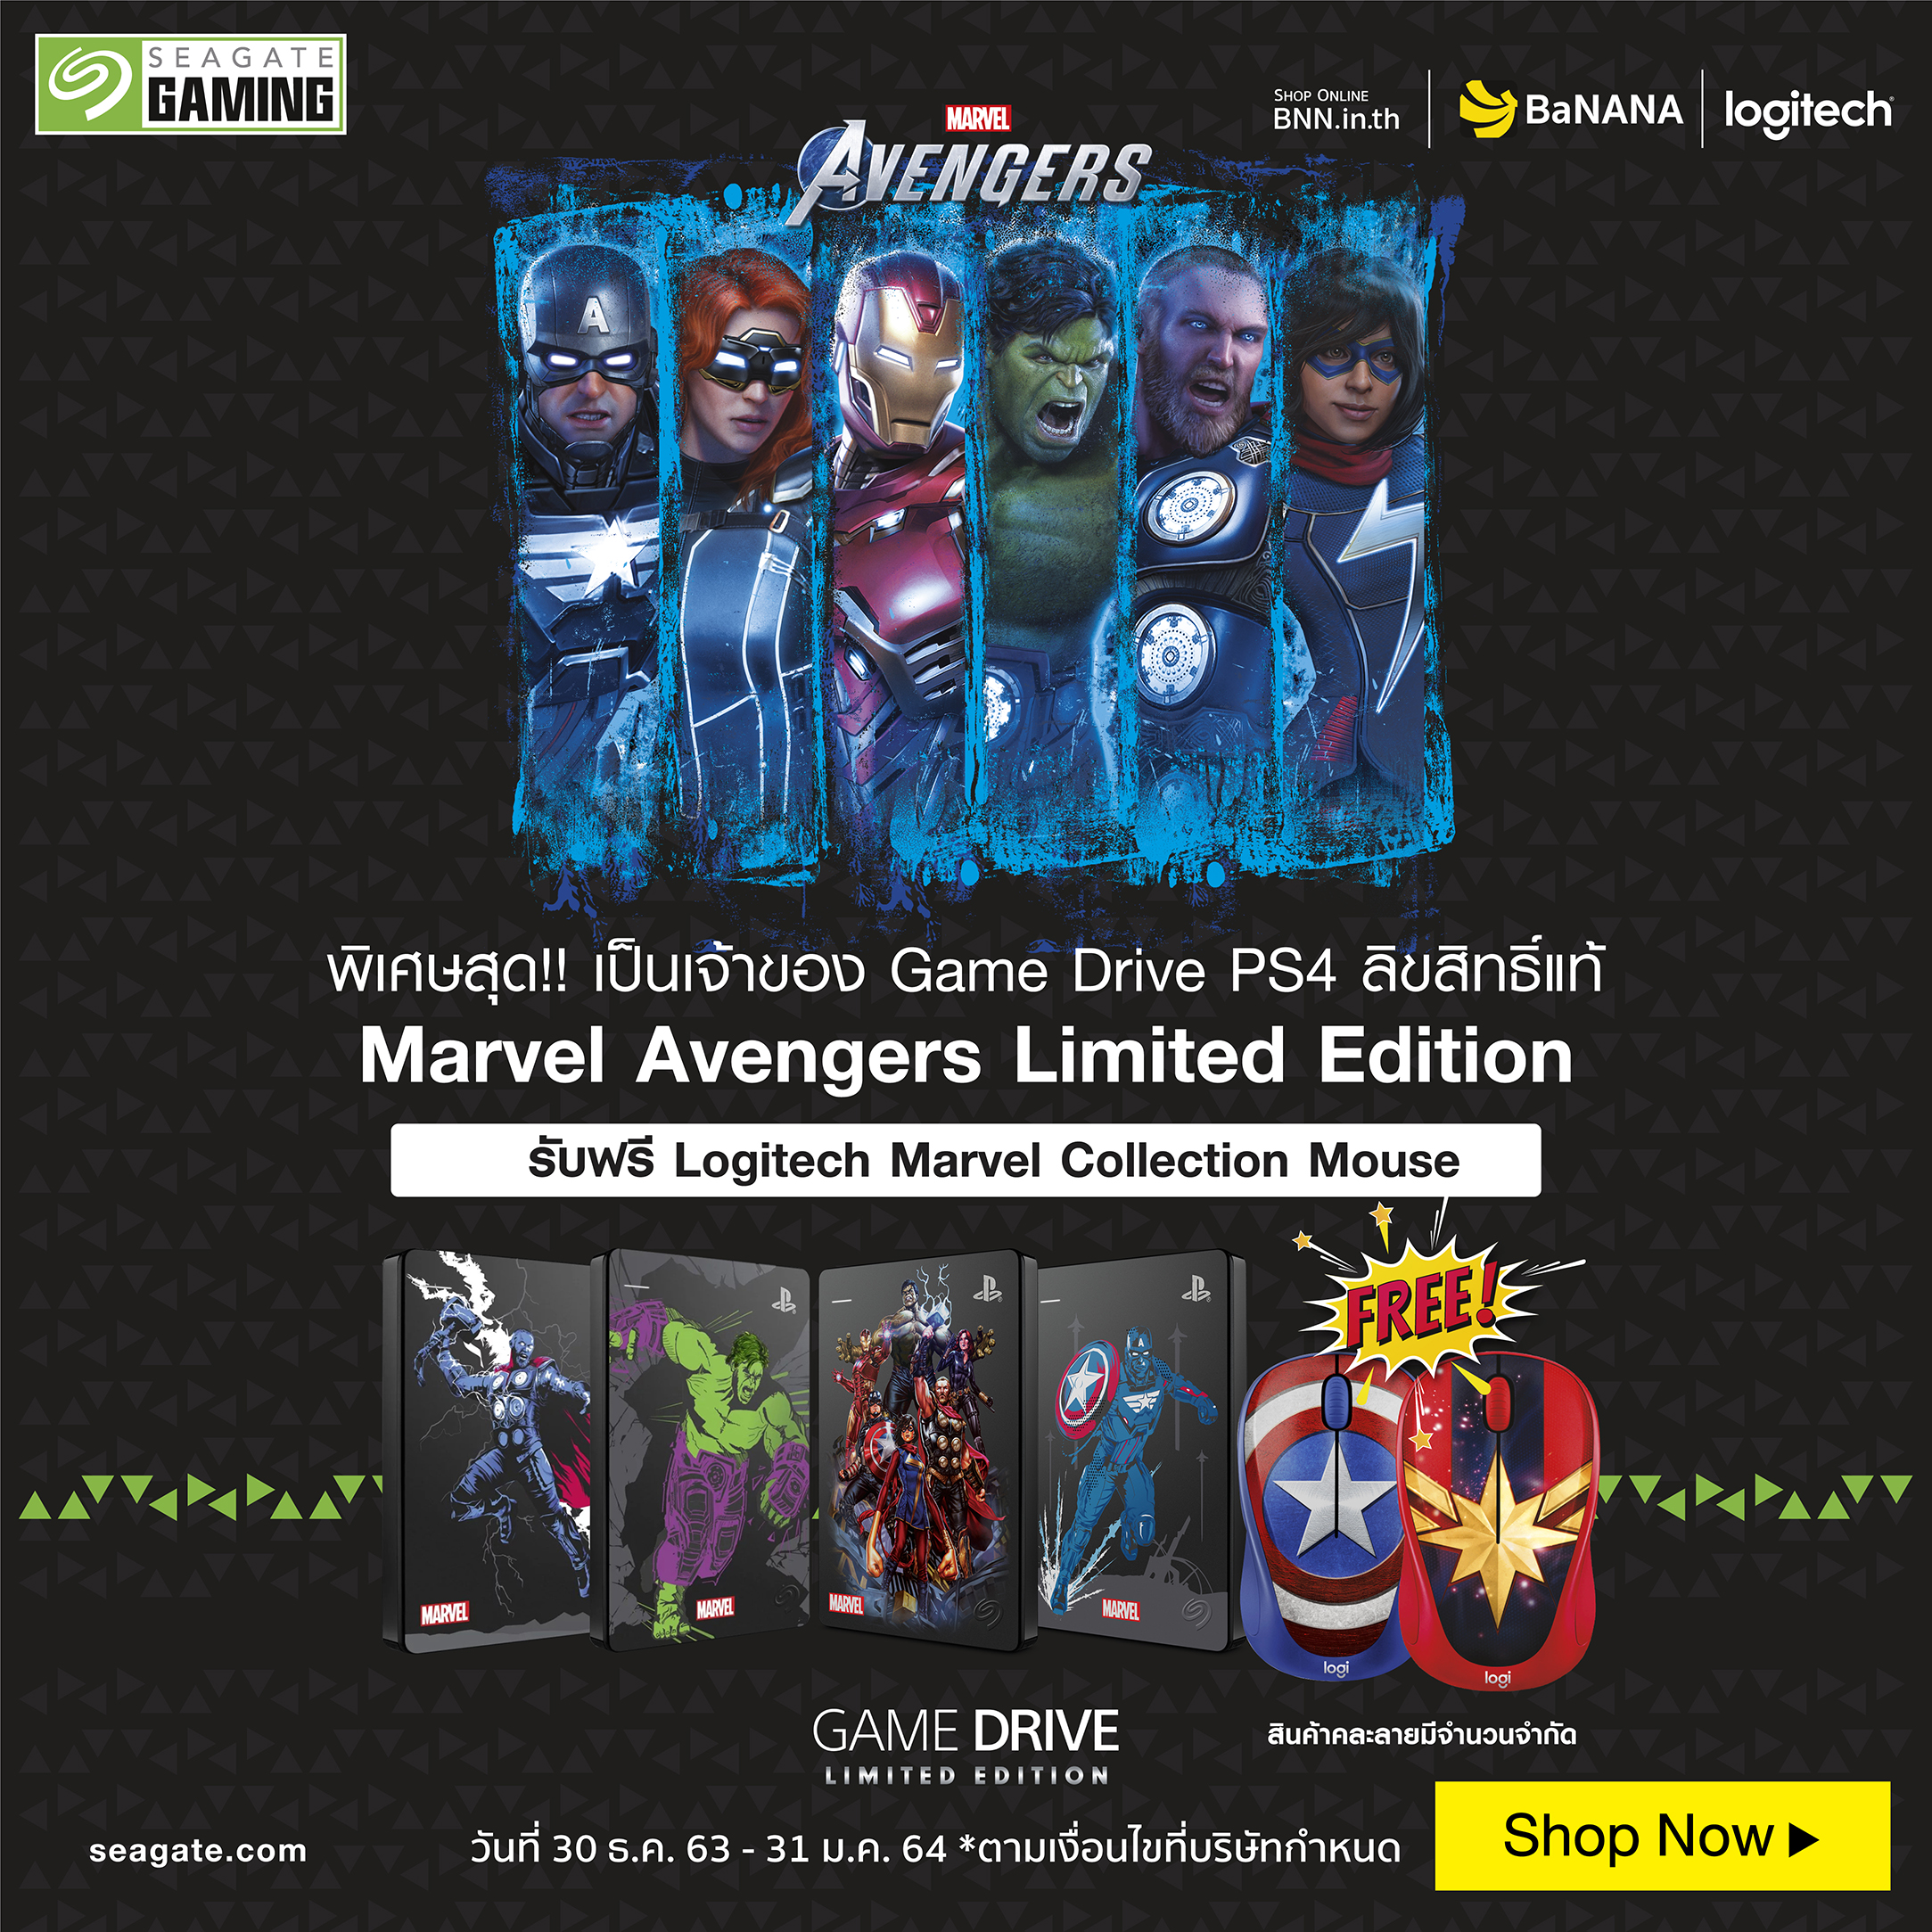 bnn.in.th - New Arrival Seagate HDD Ext Game Drive PS4 Marvel_30 Dec